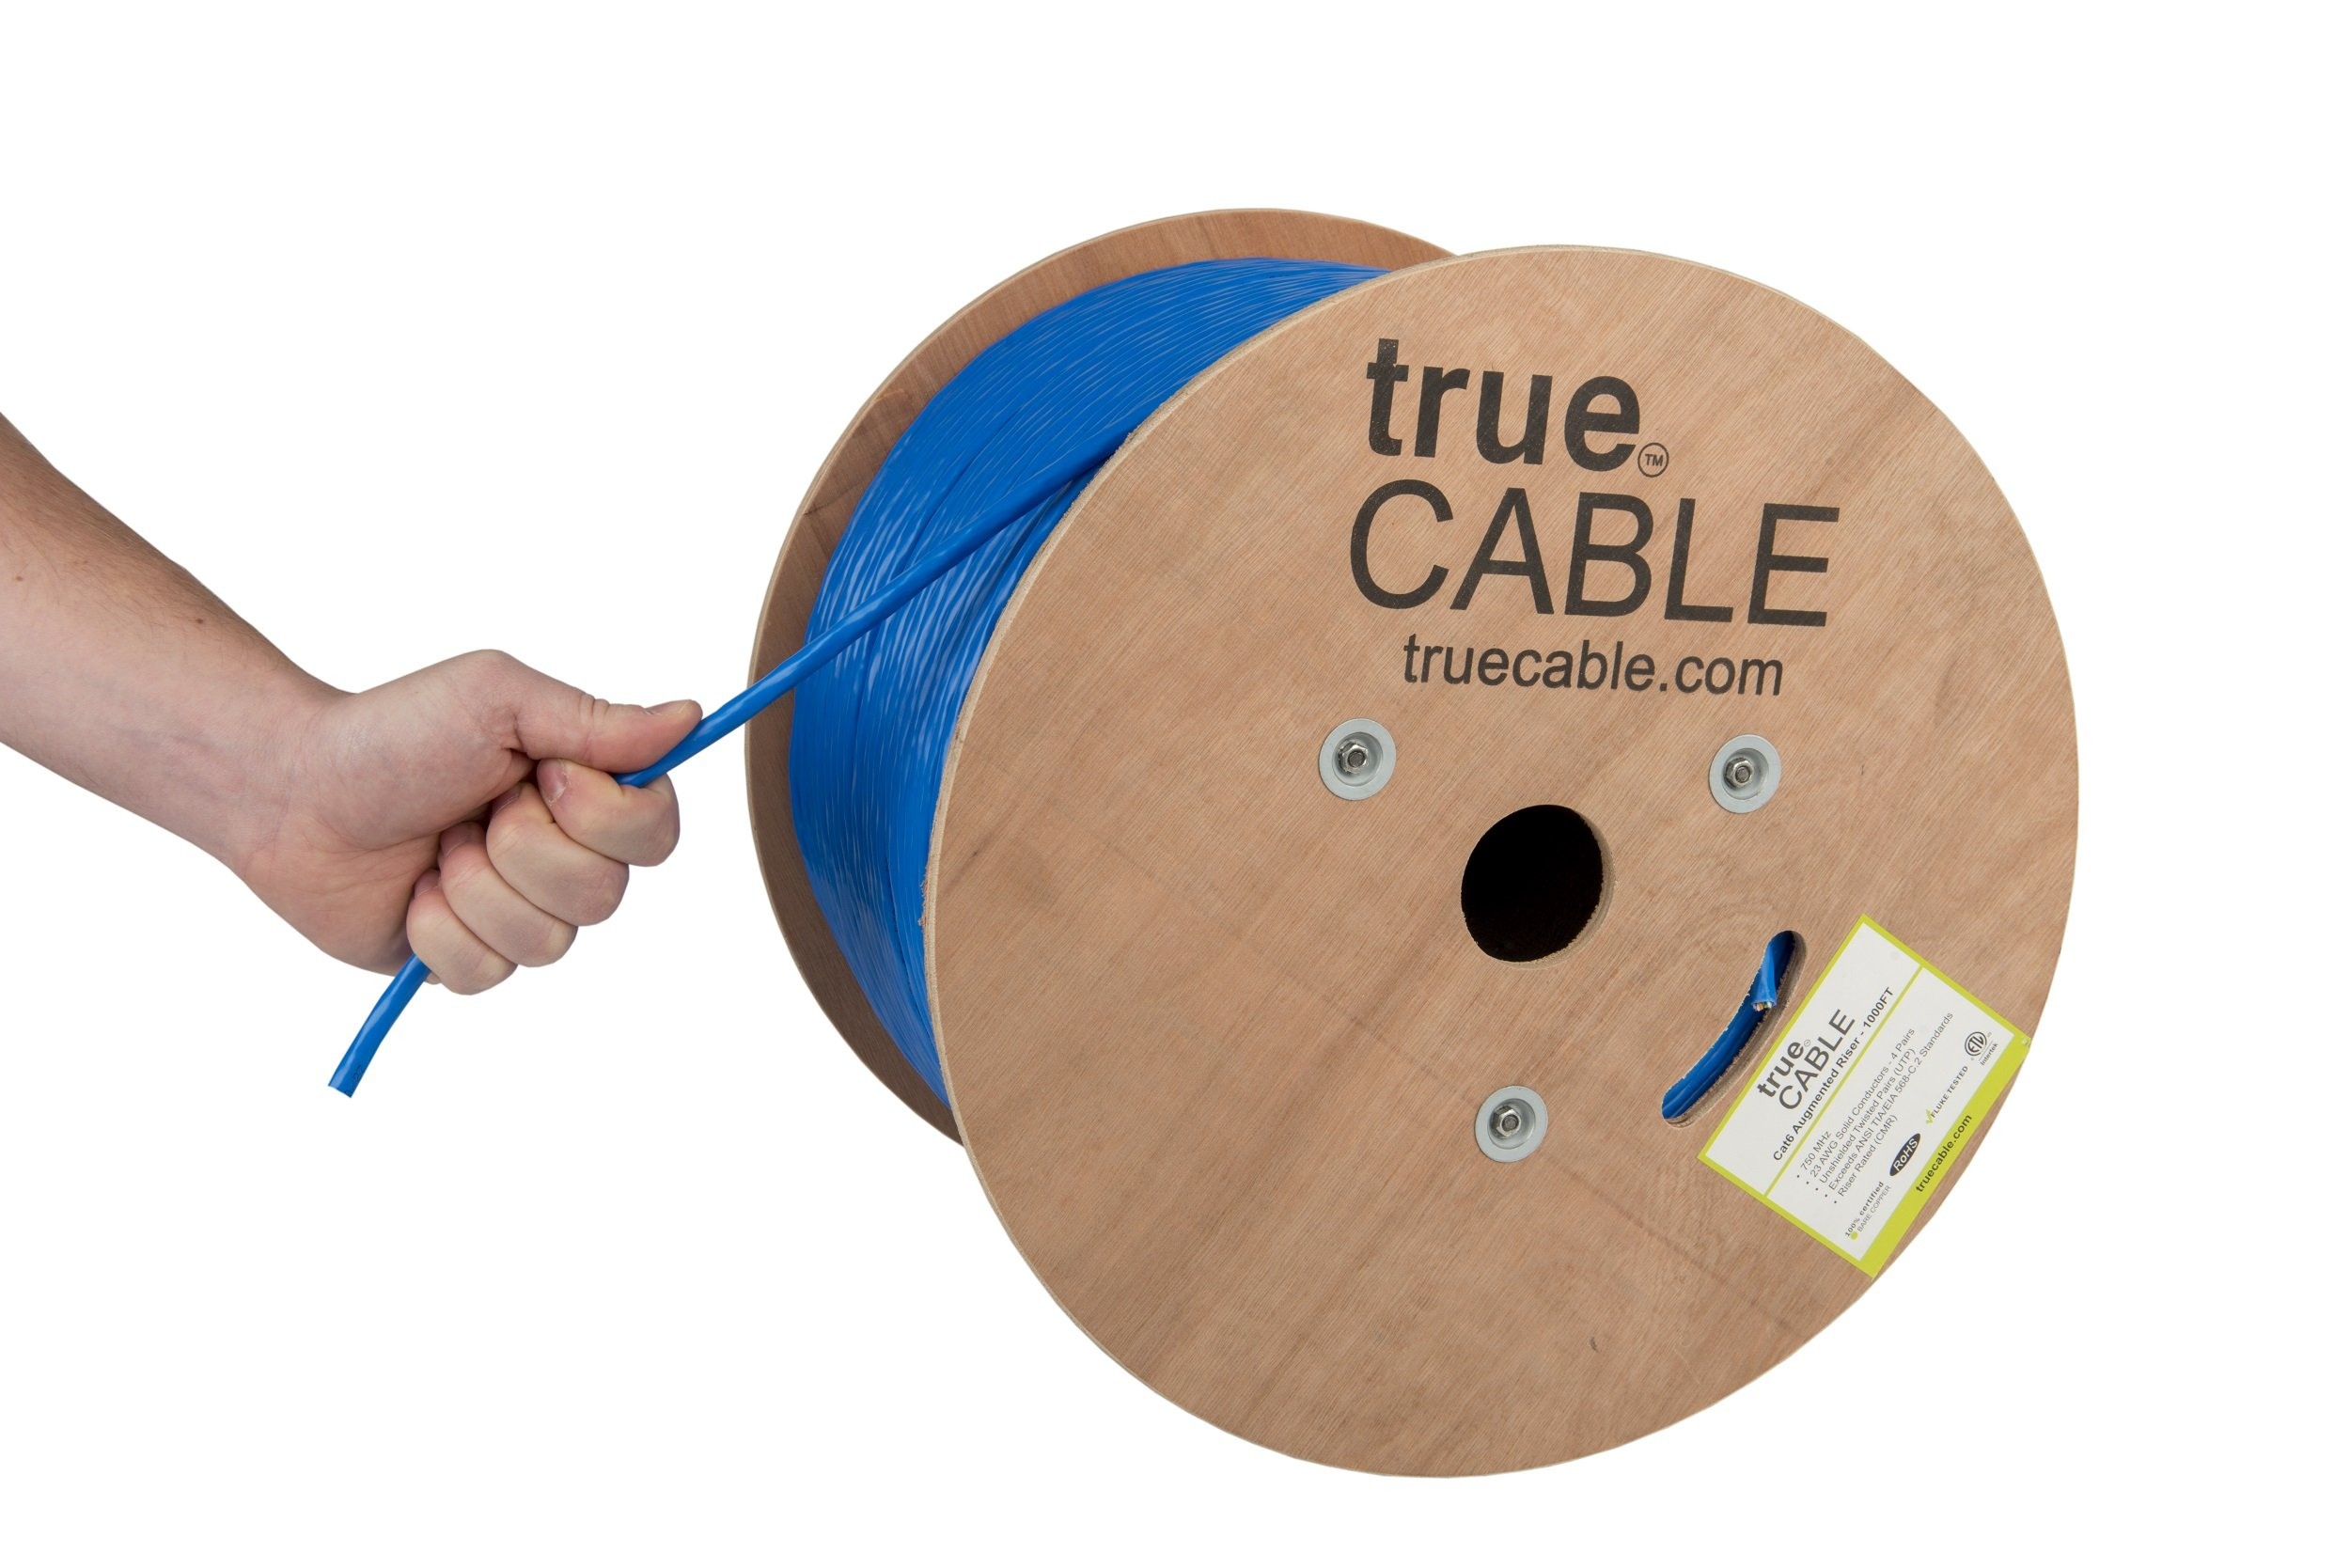 Cat6A Riser (CMR), 1000ft, Blue, Solid Bare Copper Bulk Ethernet Cable, 750MHz, ETL Listed, 23AWG 4 Pair, Unshielded Twisted Pair (UTP), trueCABLE